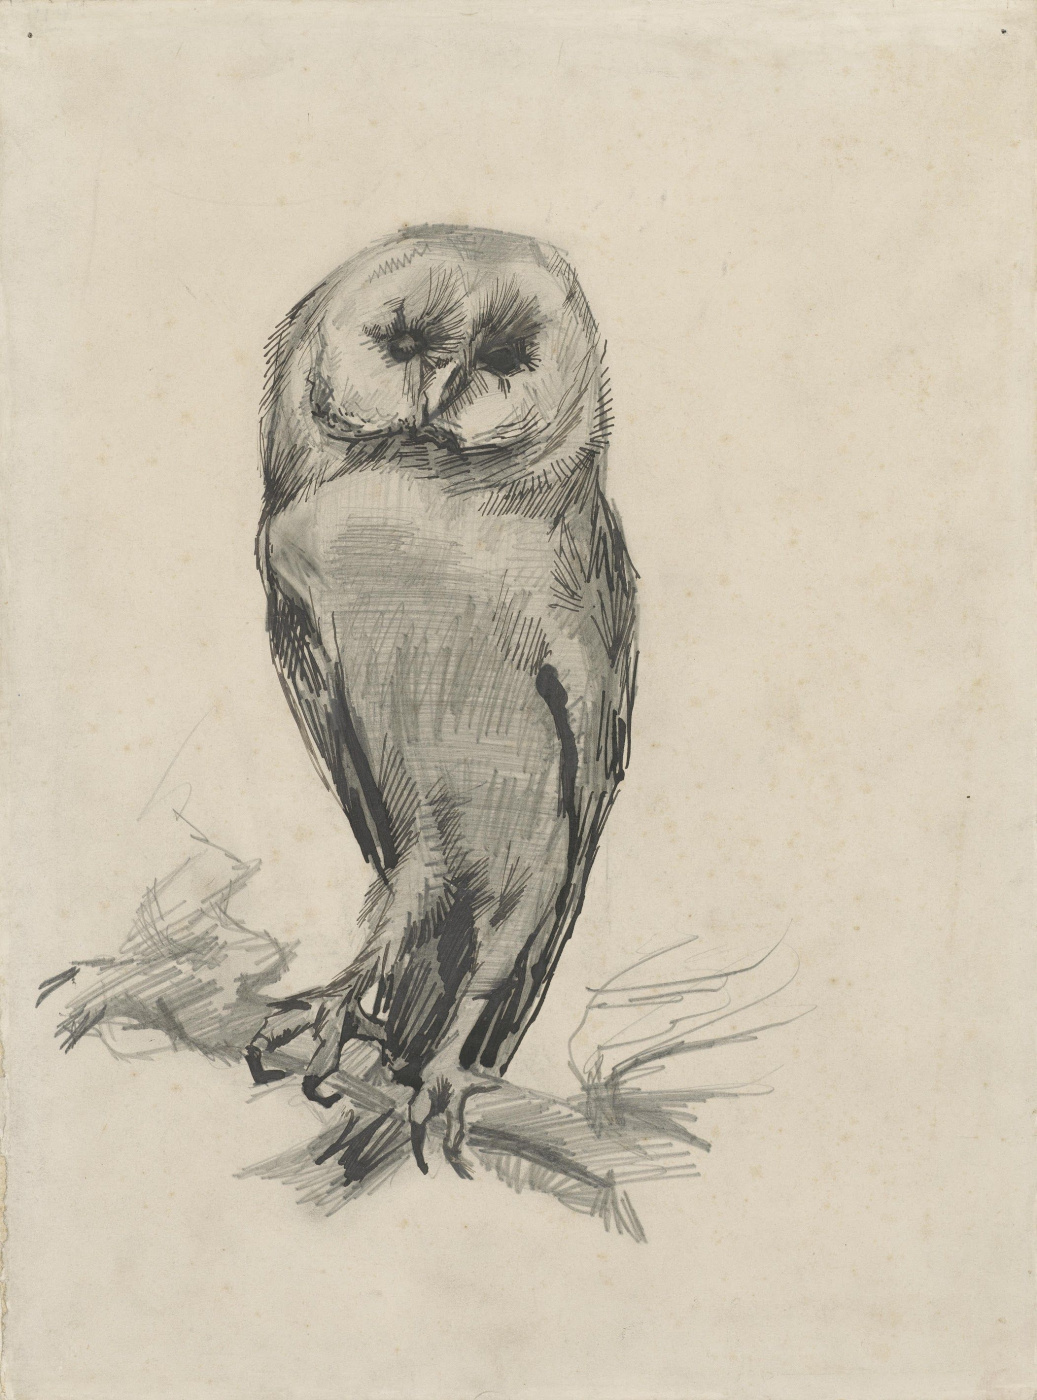 Vincent van Gogh. The barn owl, front view